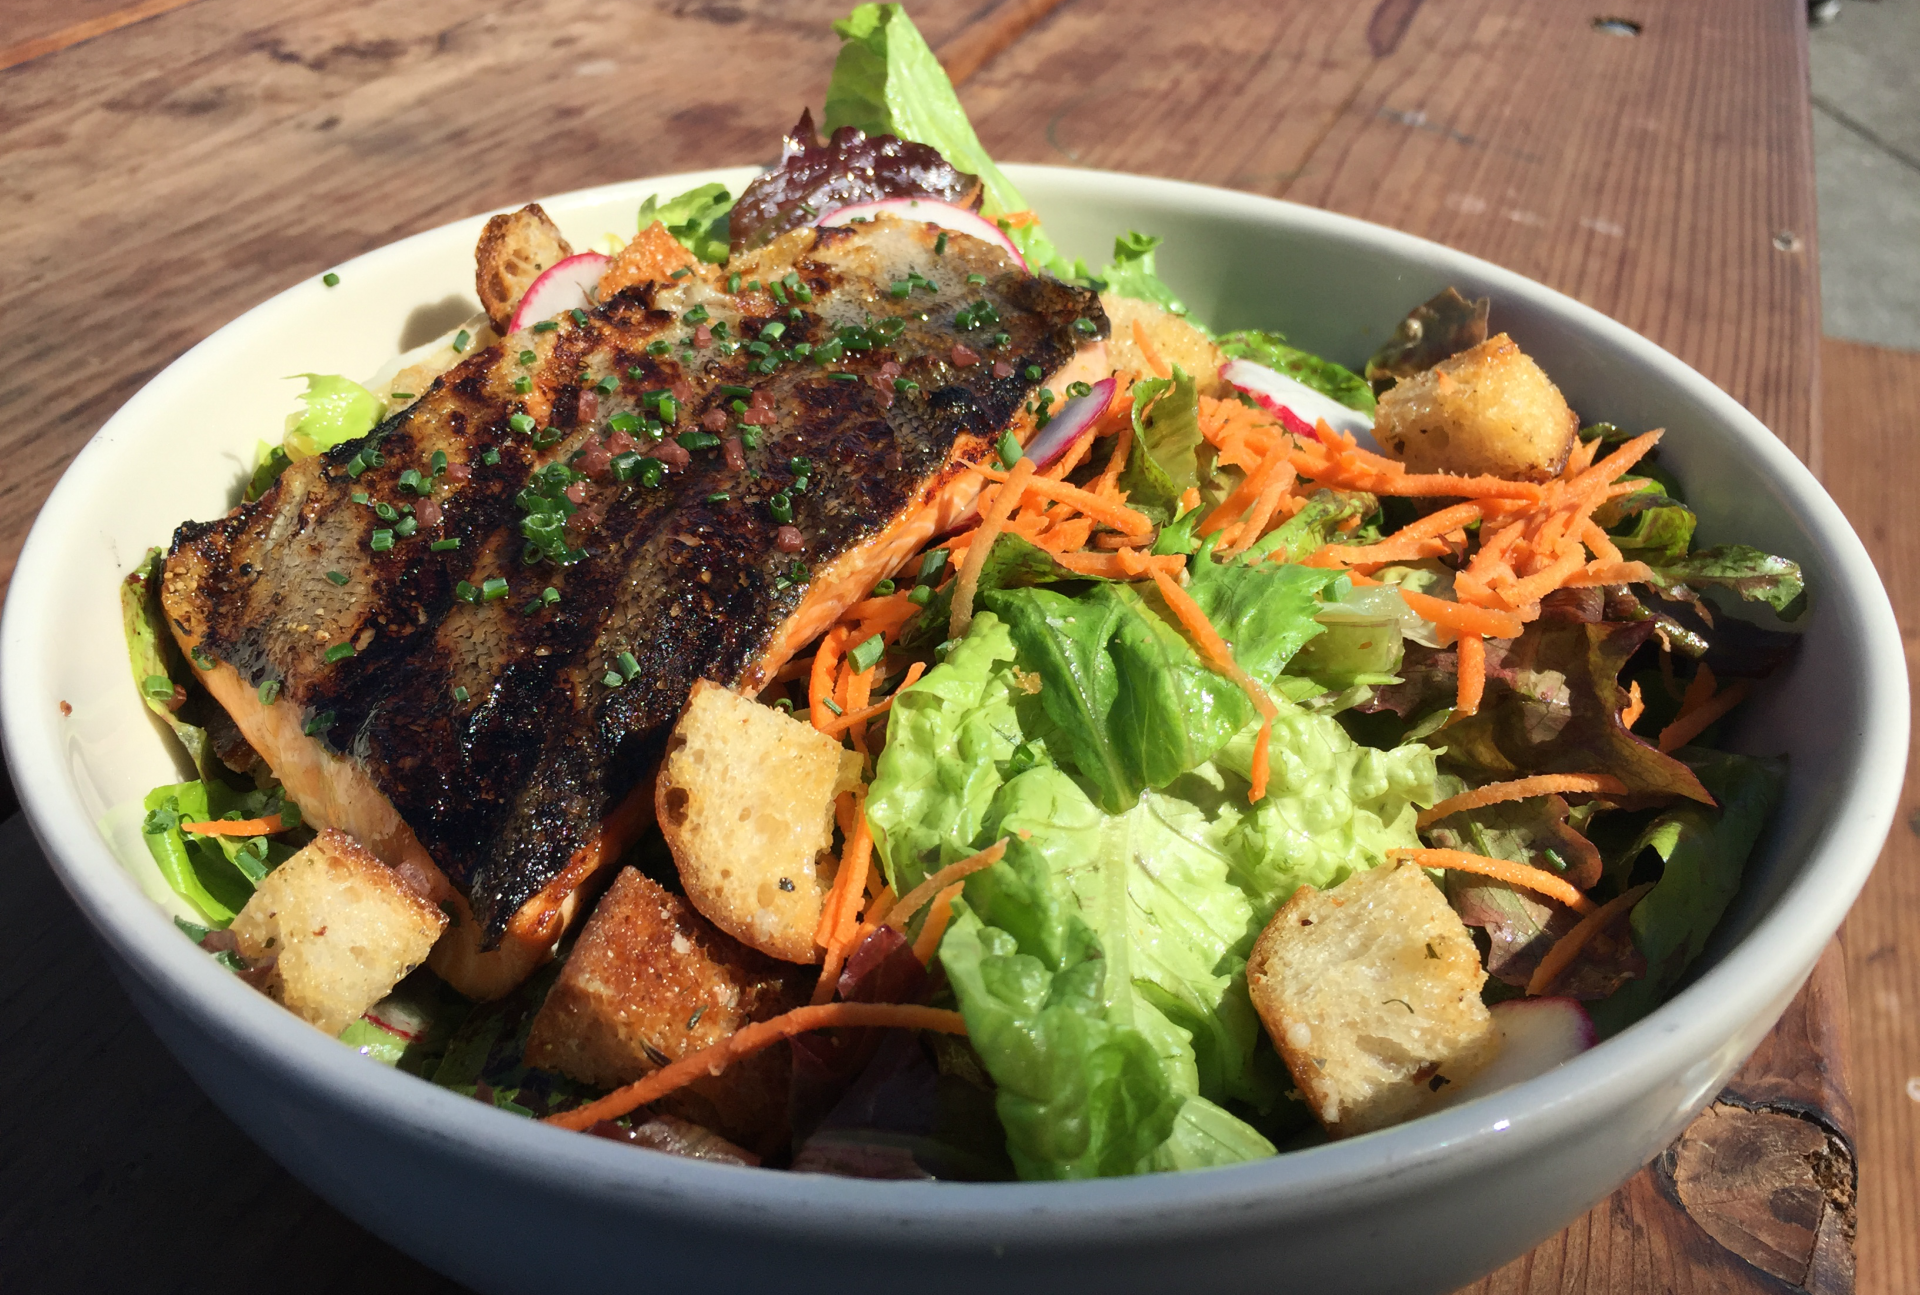 You can get the fish of the day--here, a rainbow trout--with pasta, salad or as part of a sandwich.  Shelby Pope